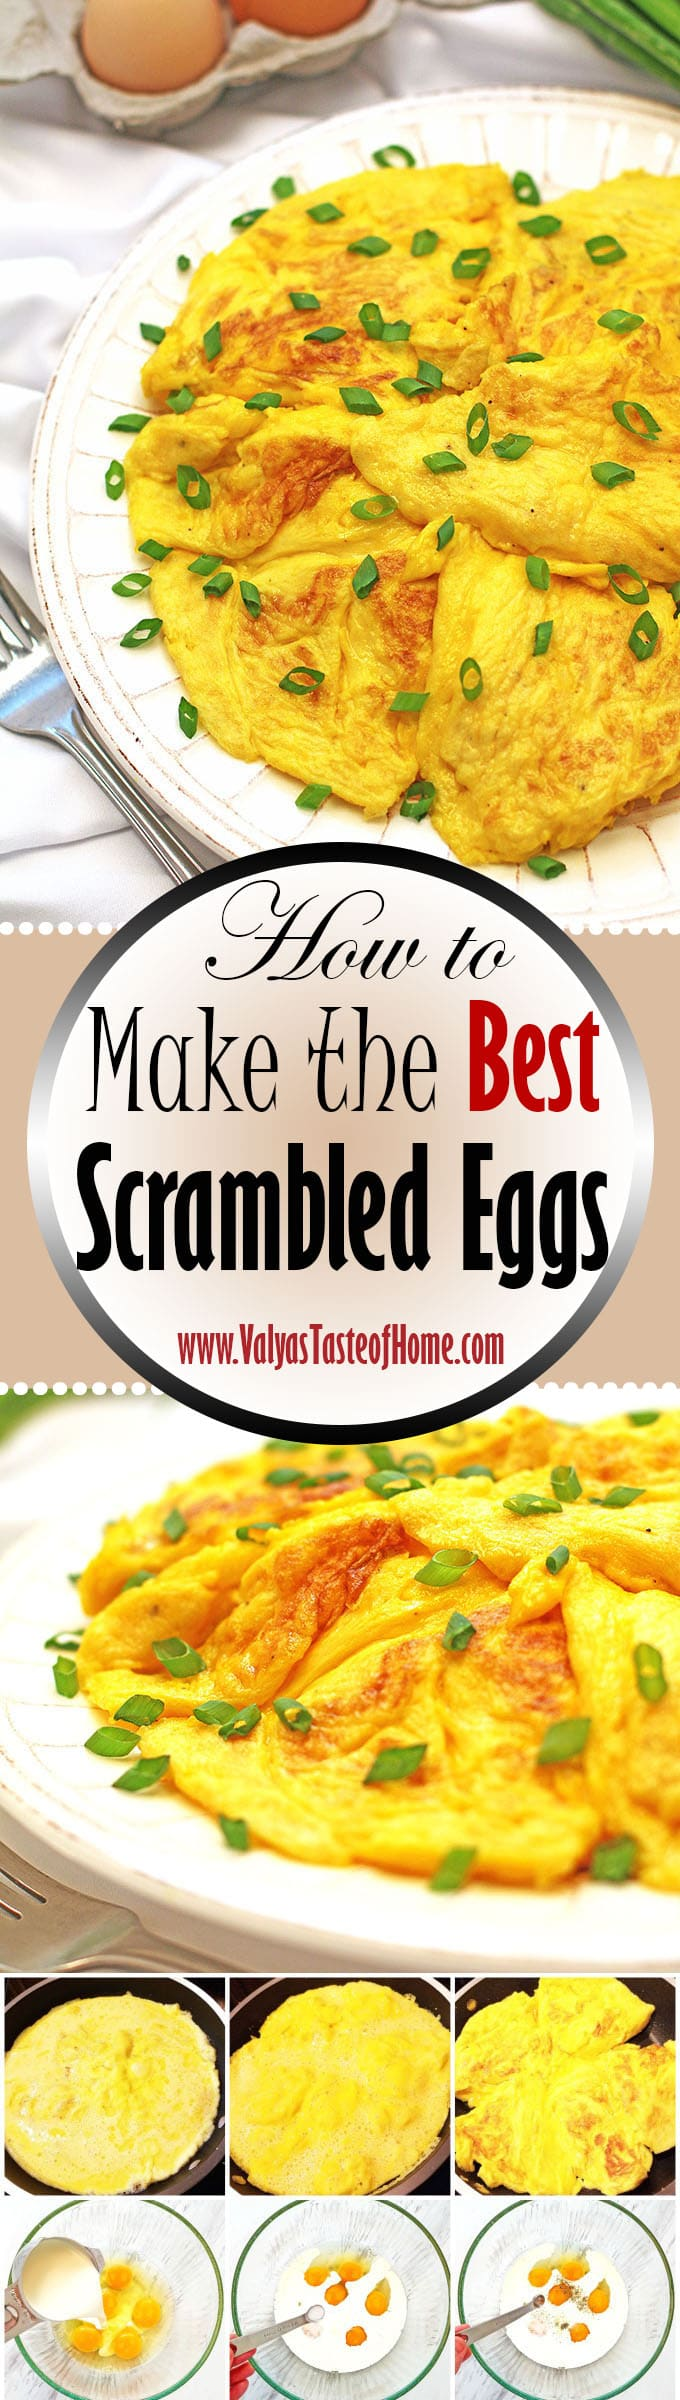 How to make the best scrambled eggs recipe valyas taste of home best scrambled eggs recipe breakfast treat comfort food home eggs how to fandeluxe Document